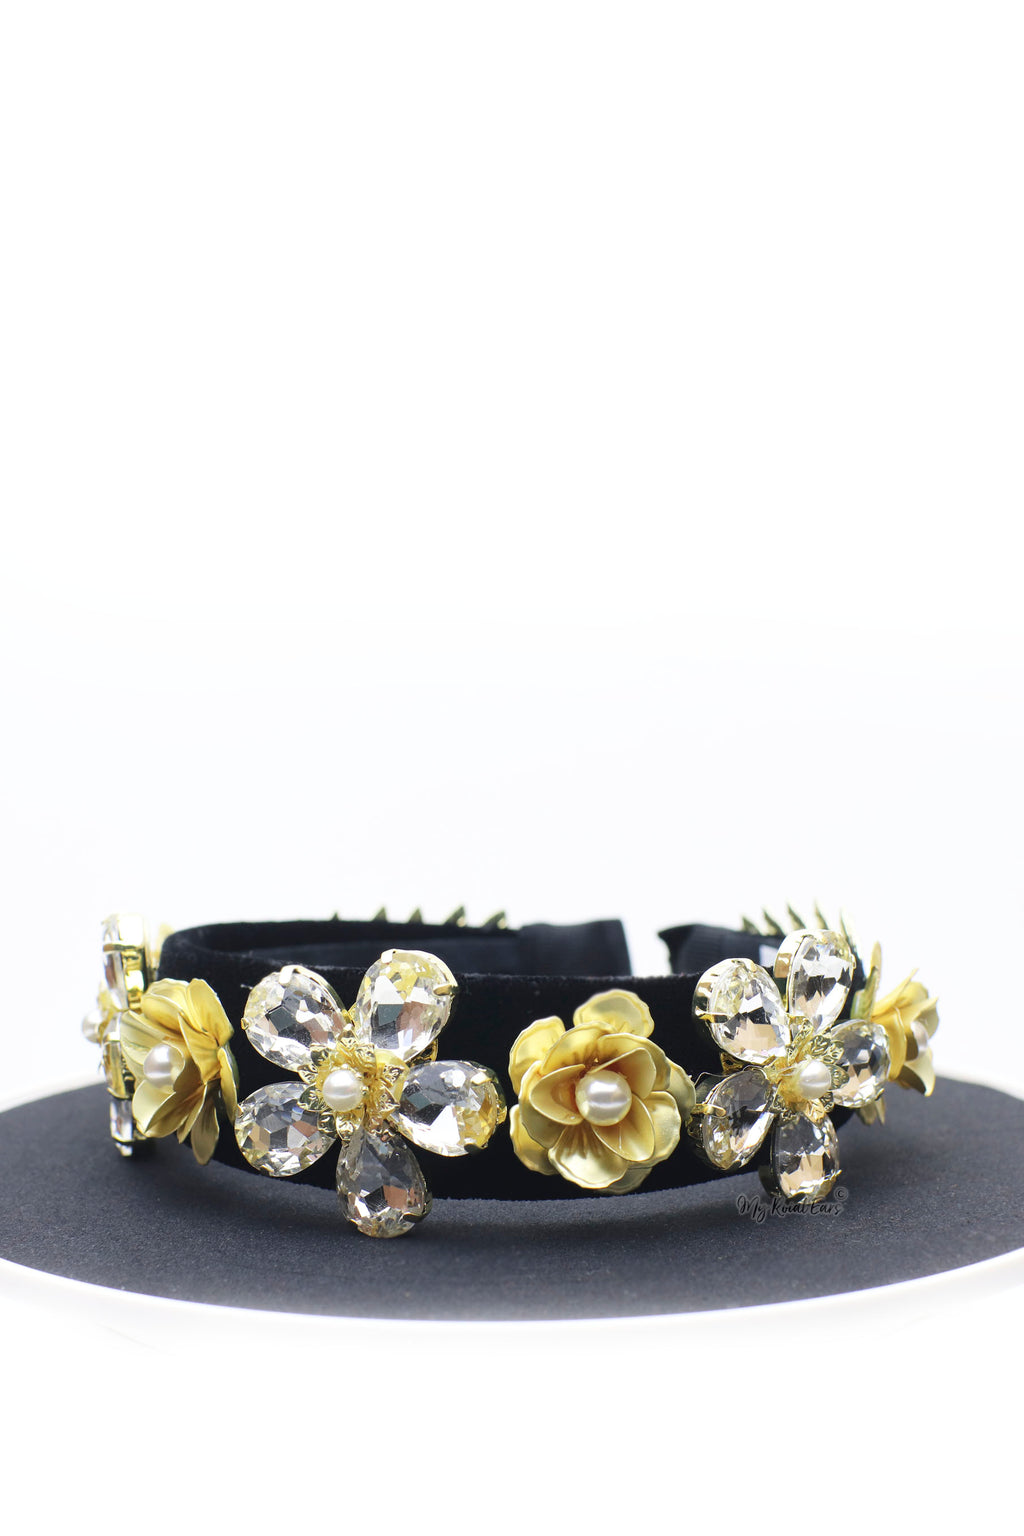 Queen Cayla- golden floral metal headband - My Roial Ears LTD